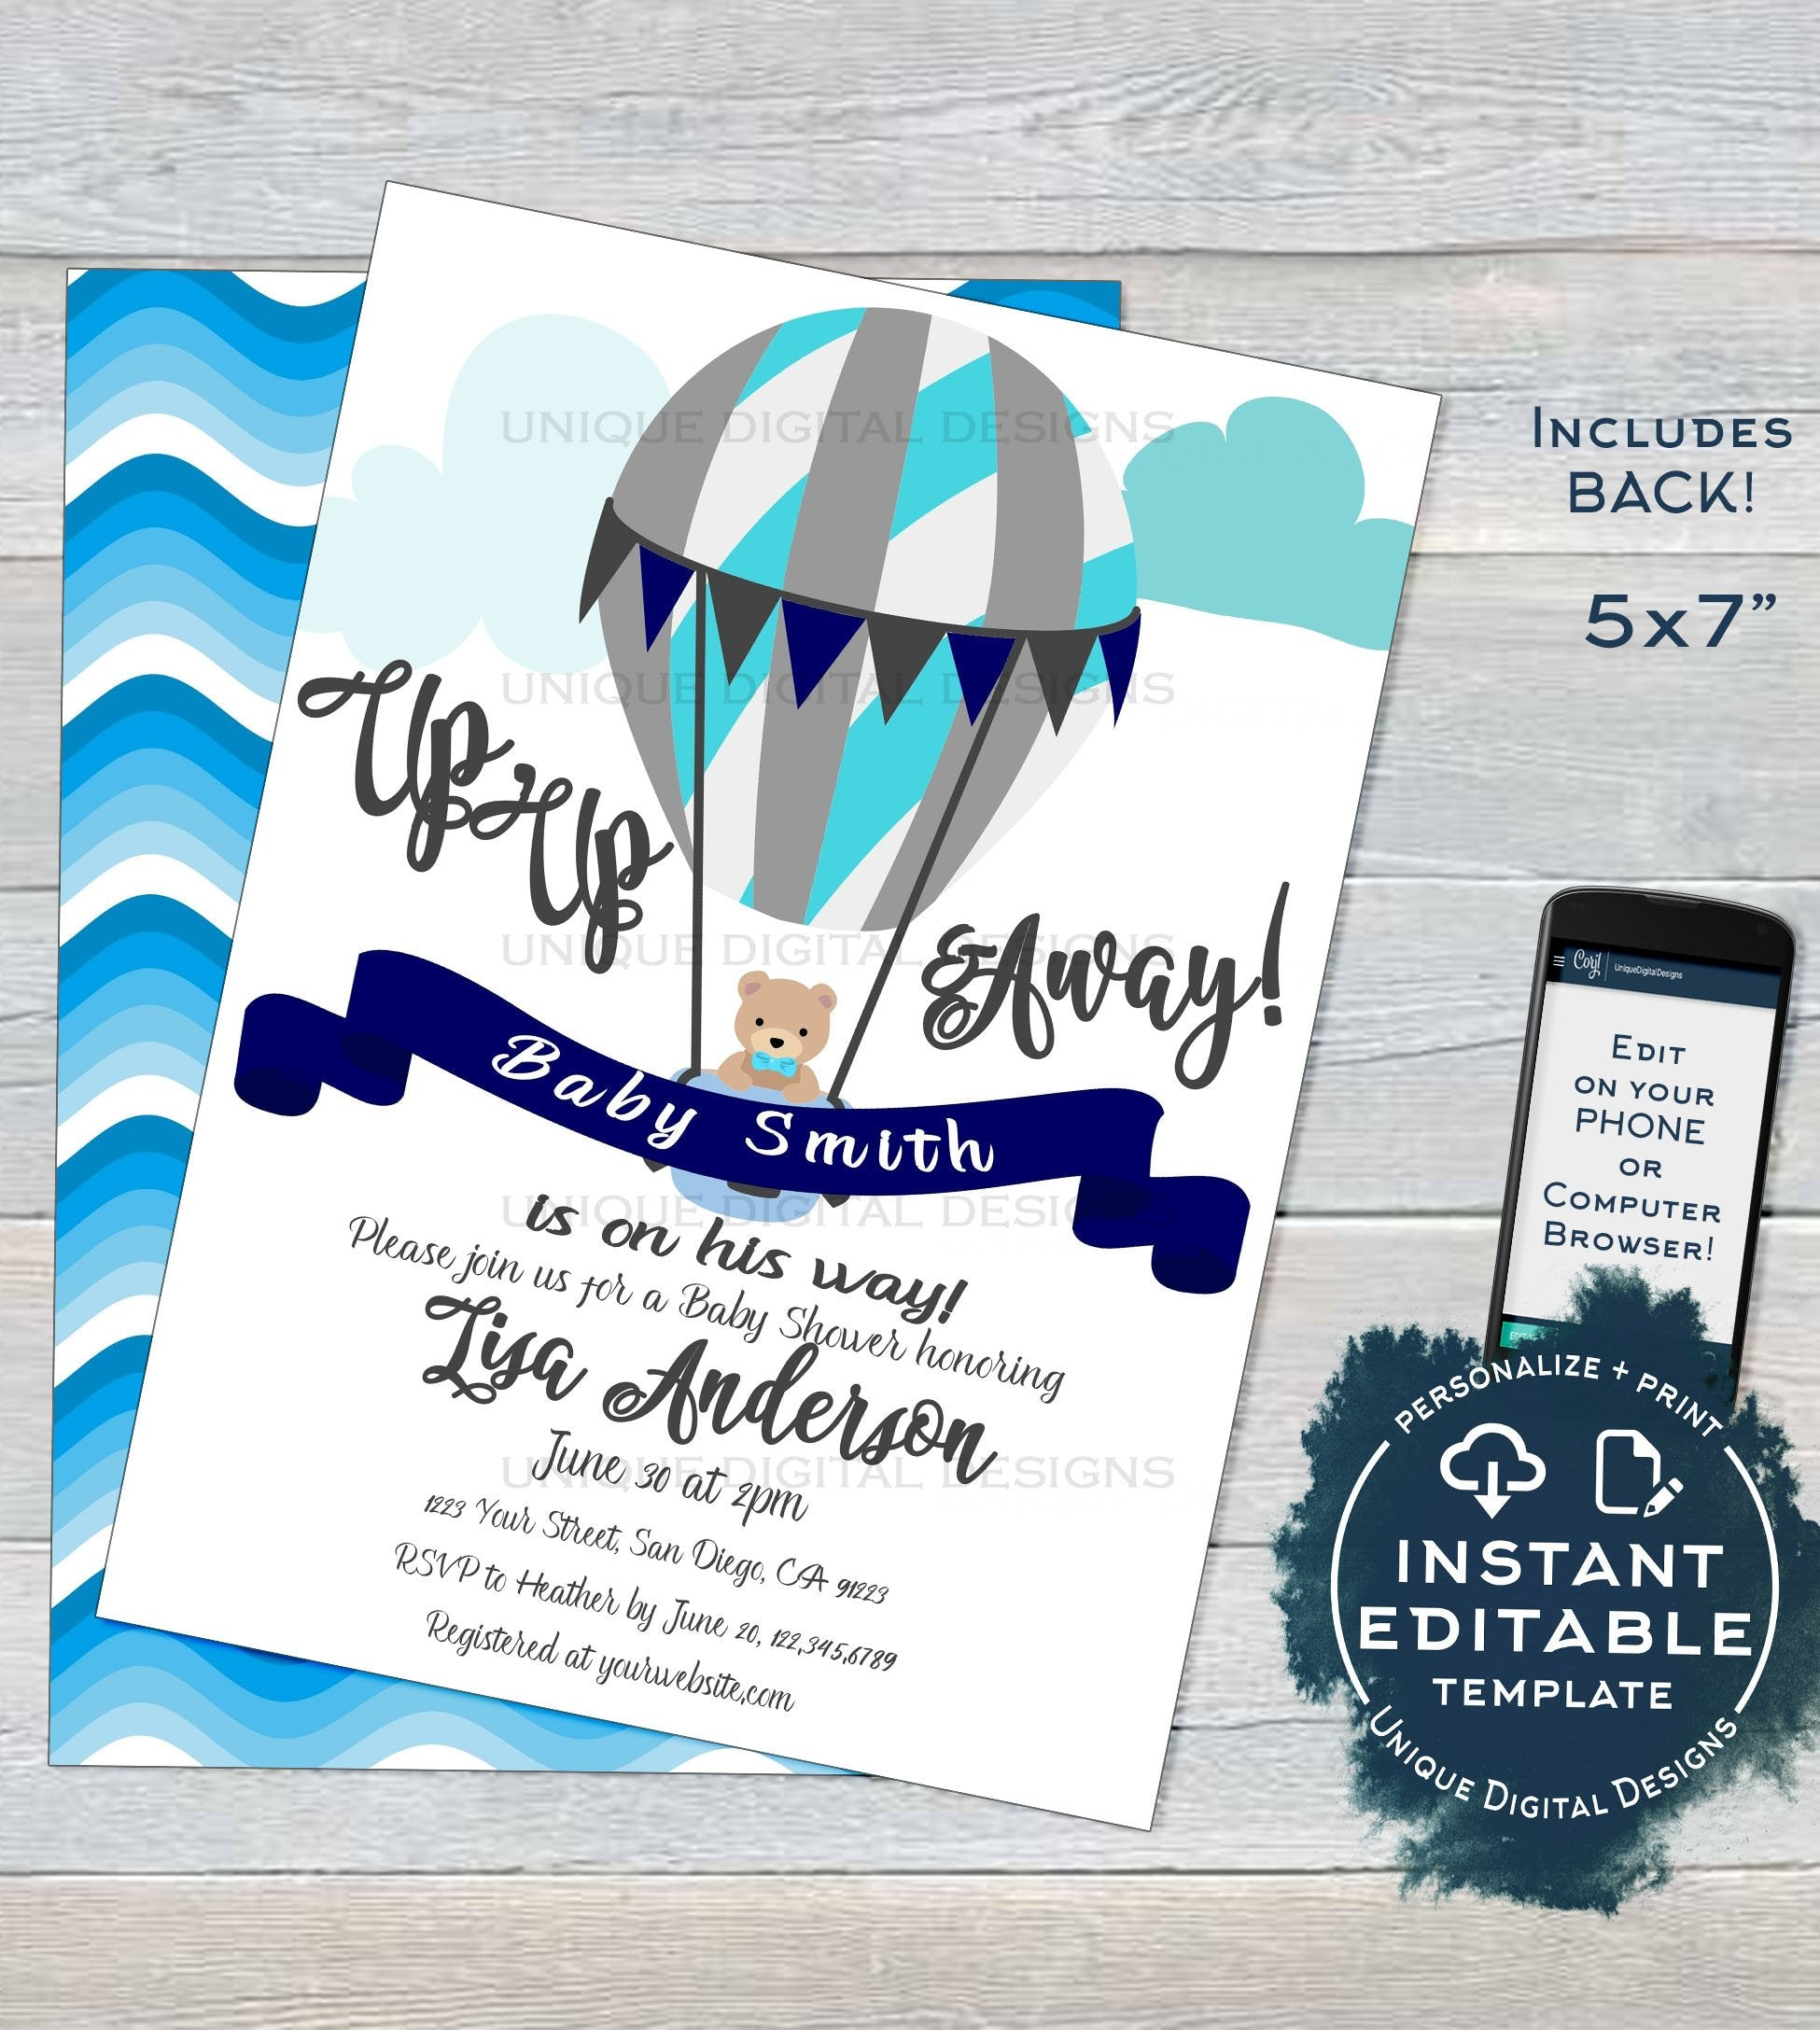 Hot Air Balloon Invitation, Editable Up Up and Away Invite ...